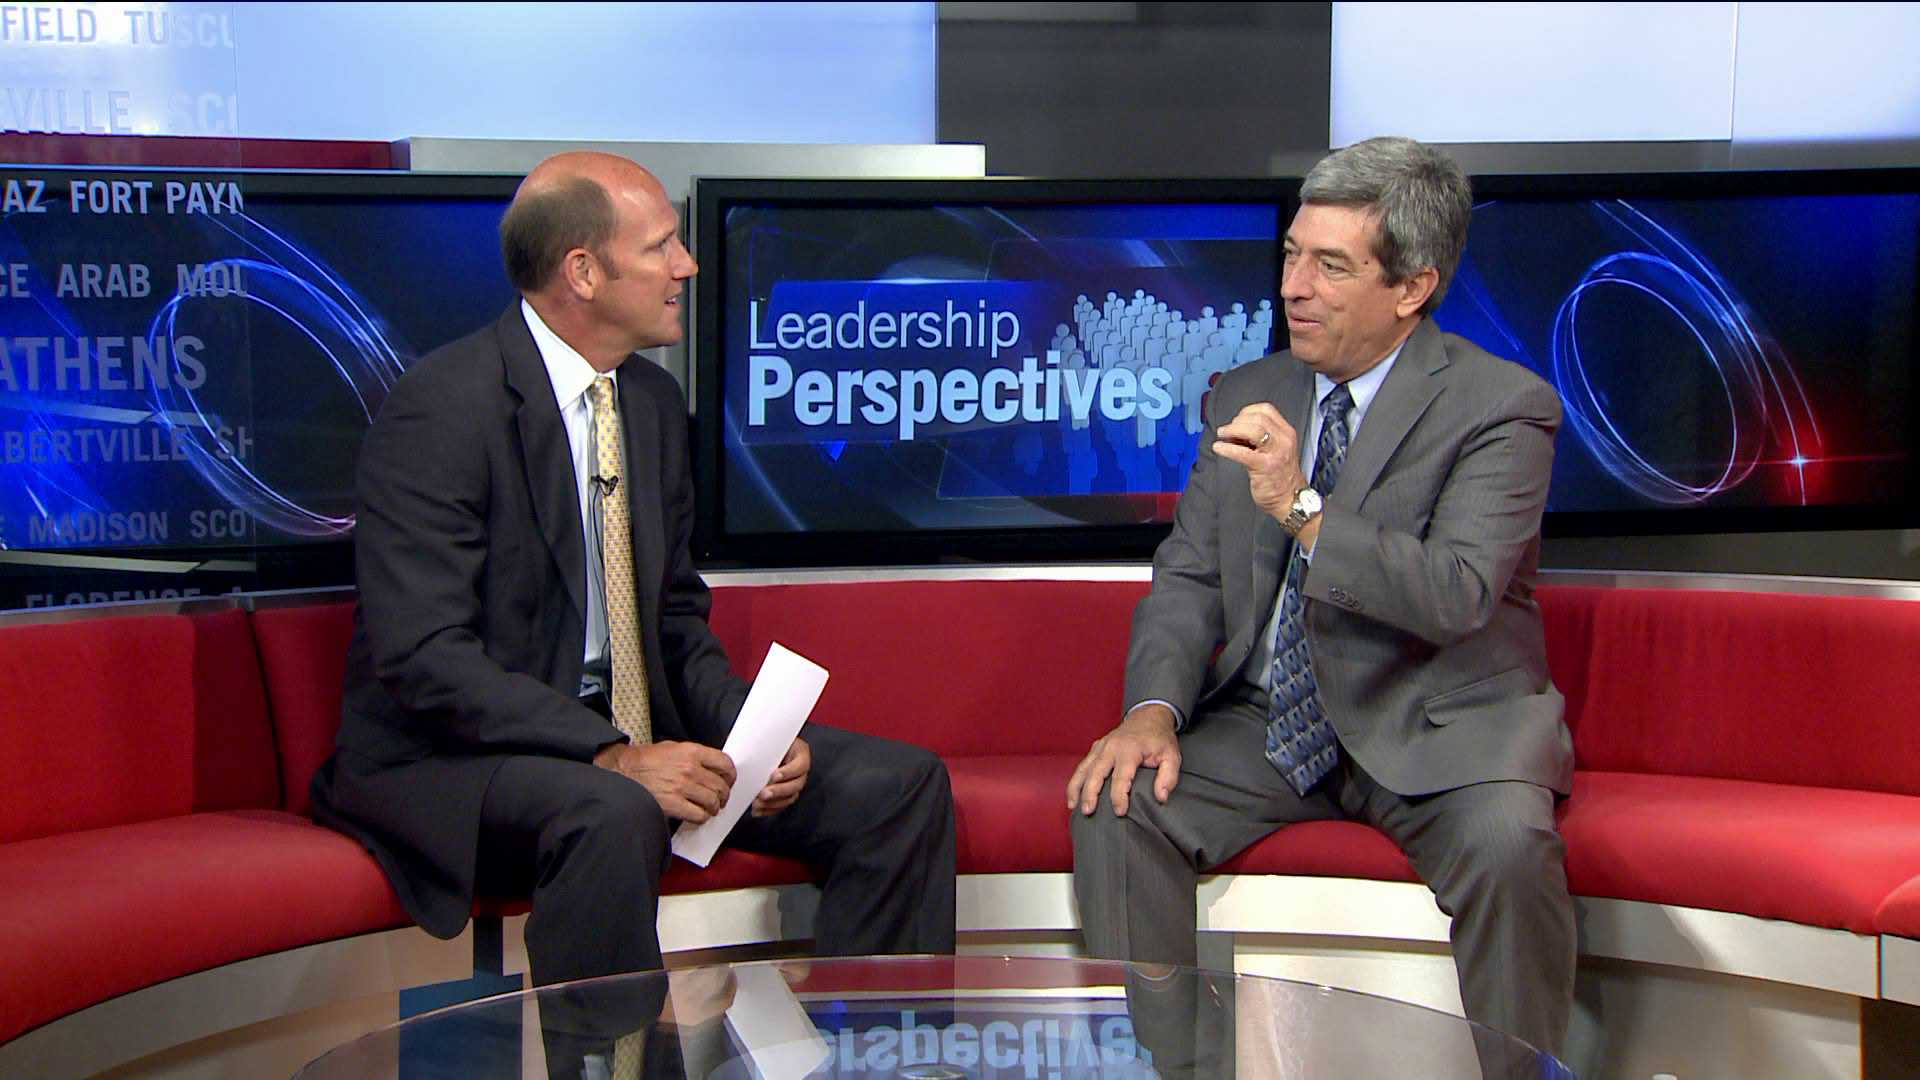 Paul Finley (L) interviews Don Kyle (R) for this segment of Leadership Perspectives. (WHNT News 19)